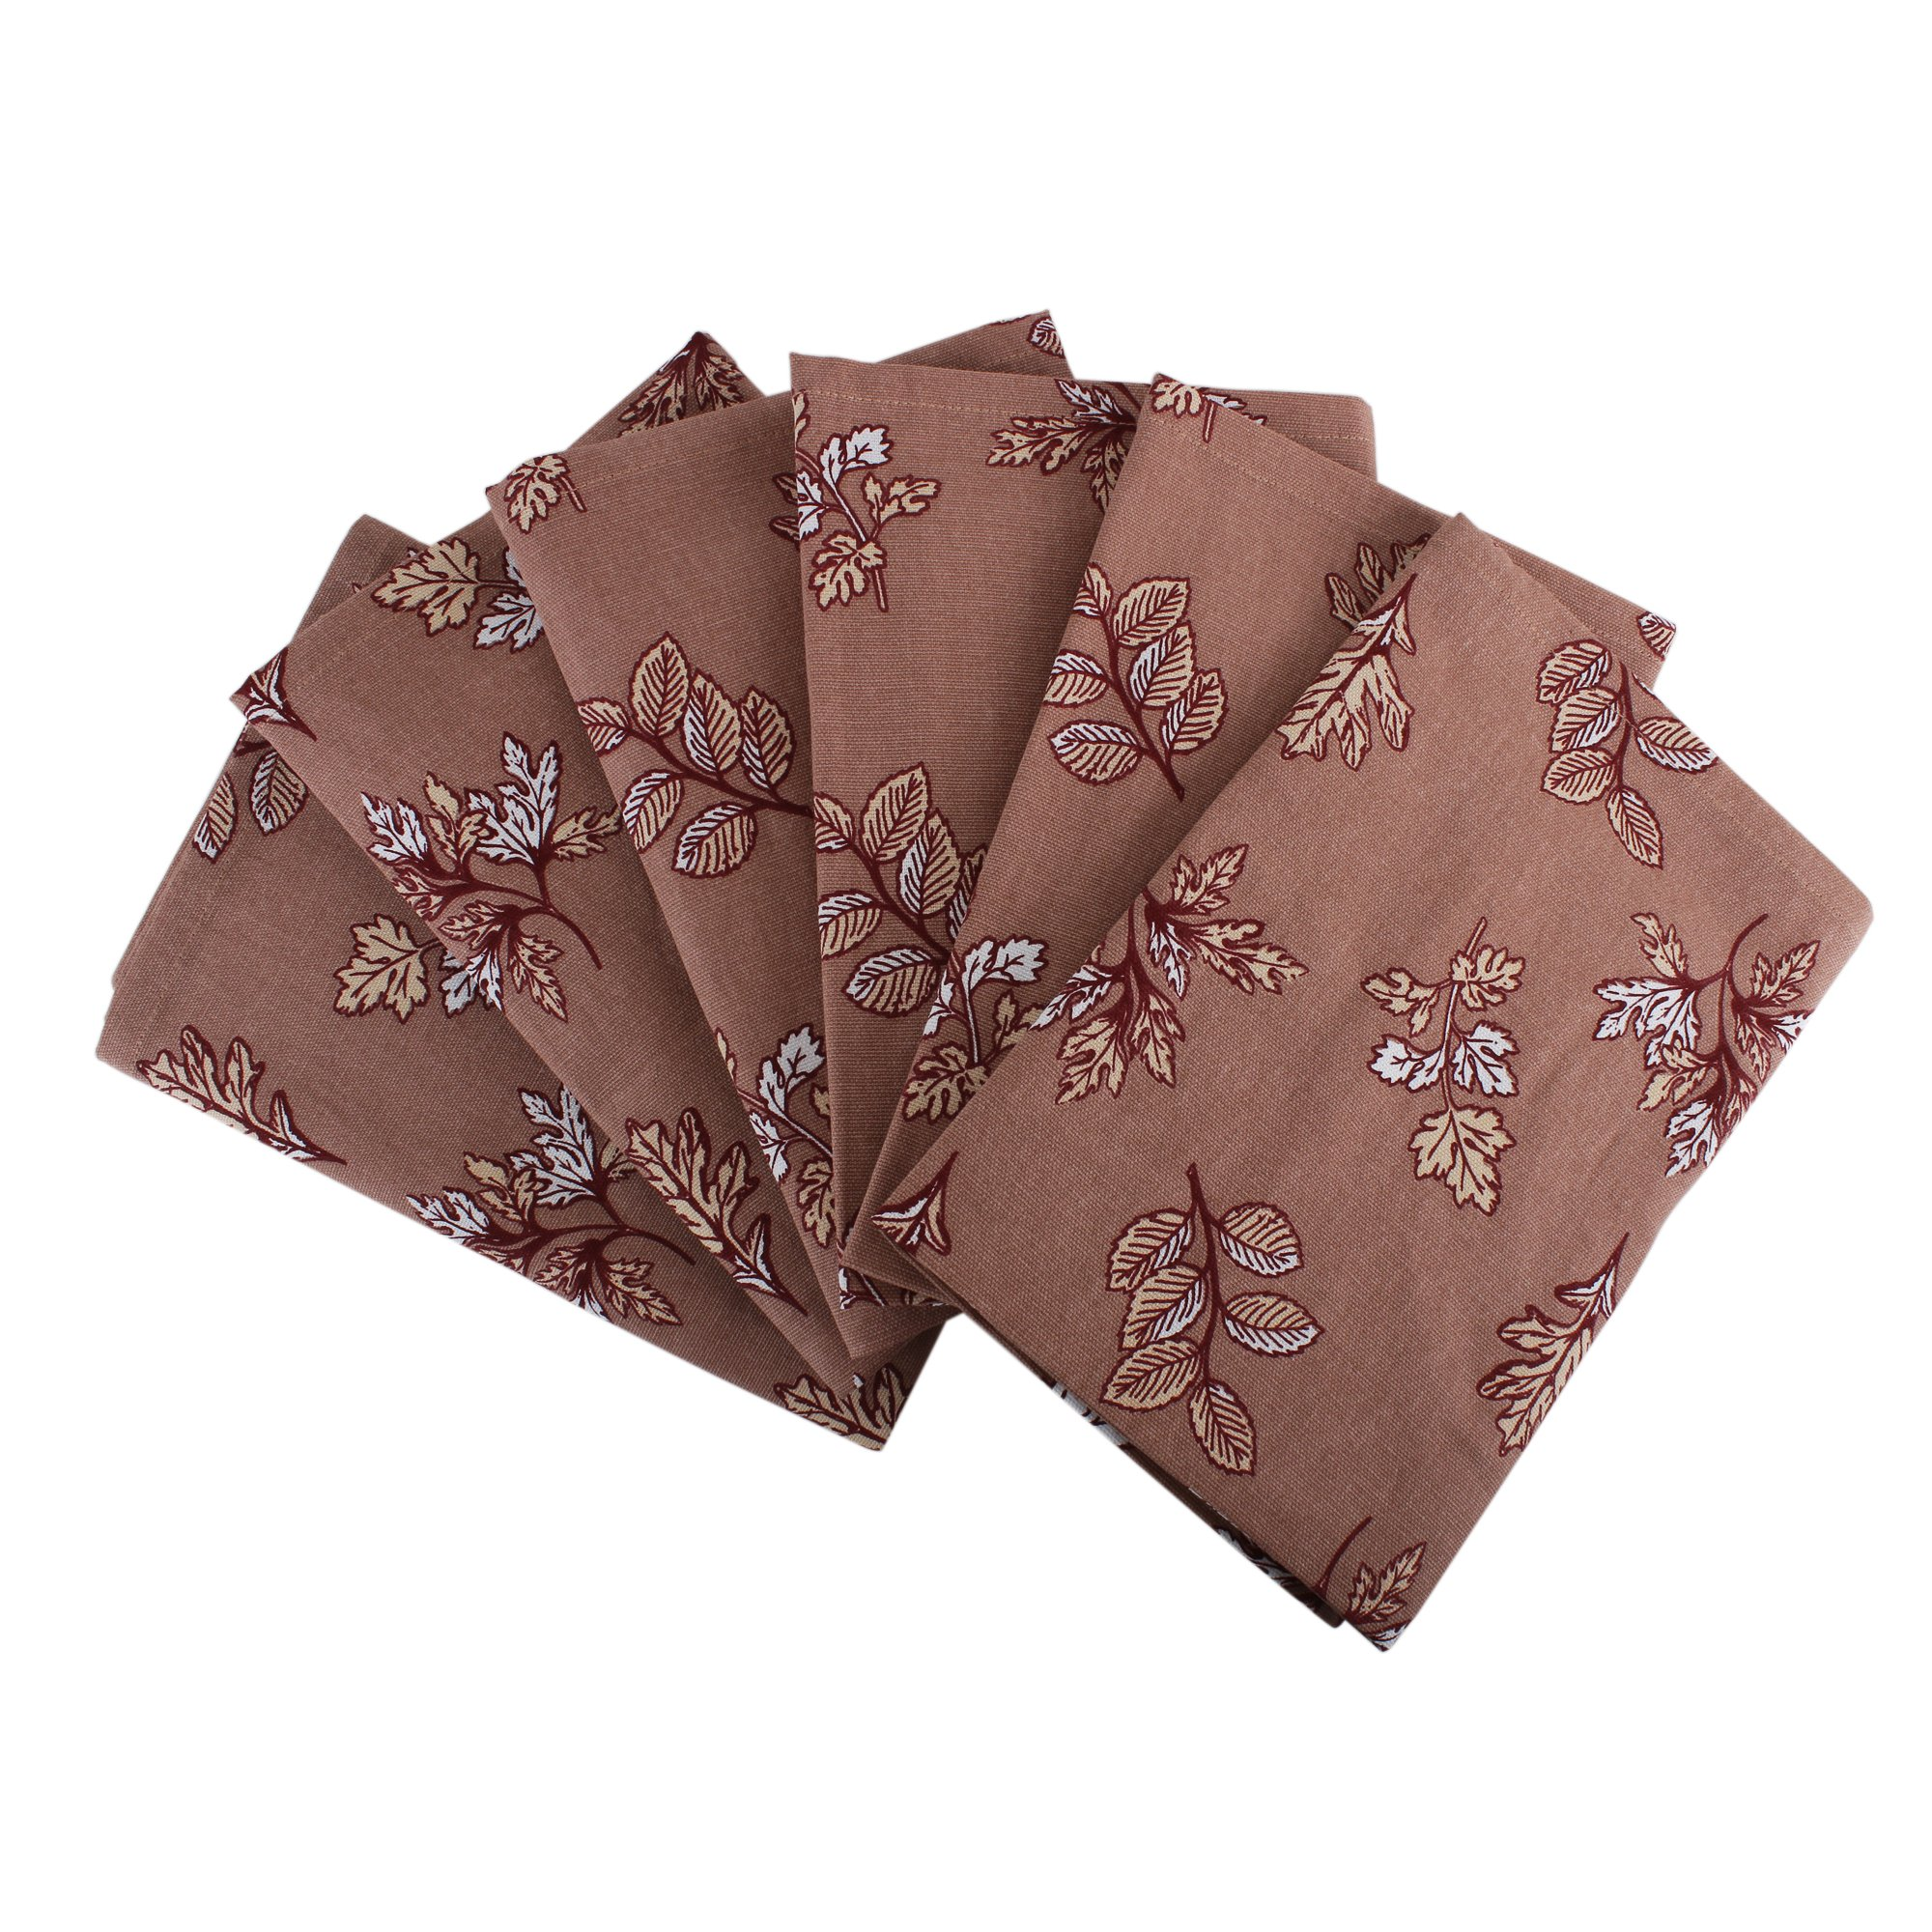 Set of 6 Napkins, 100% Cotton of size 20''X20 Inch, Eco - Friendly & Safe, Autumn Leaves on Brown Skies Design for Kitchen